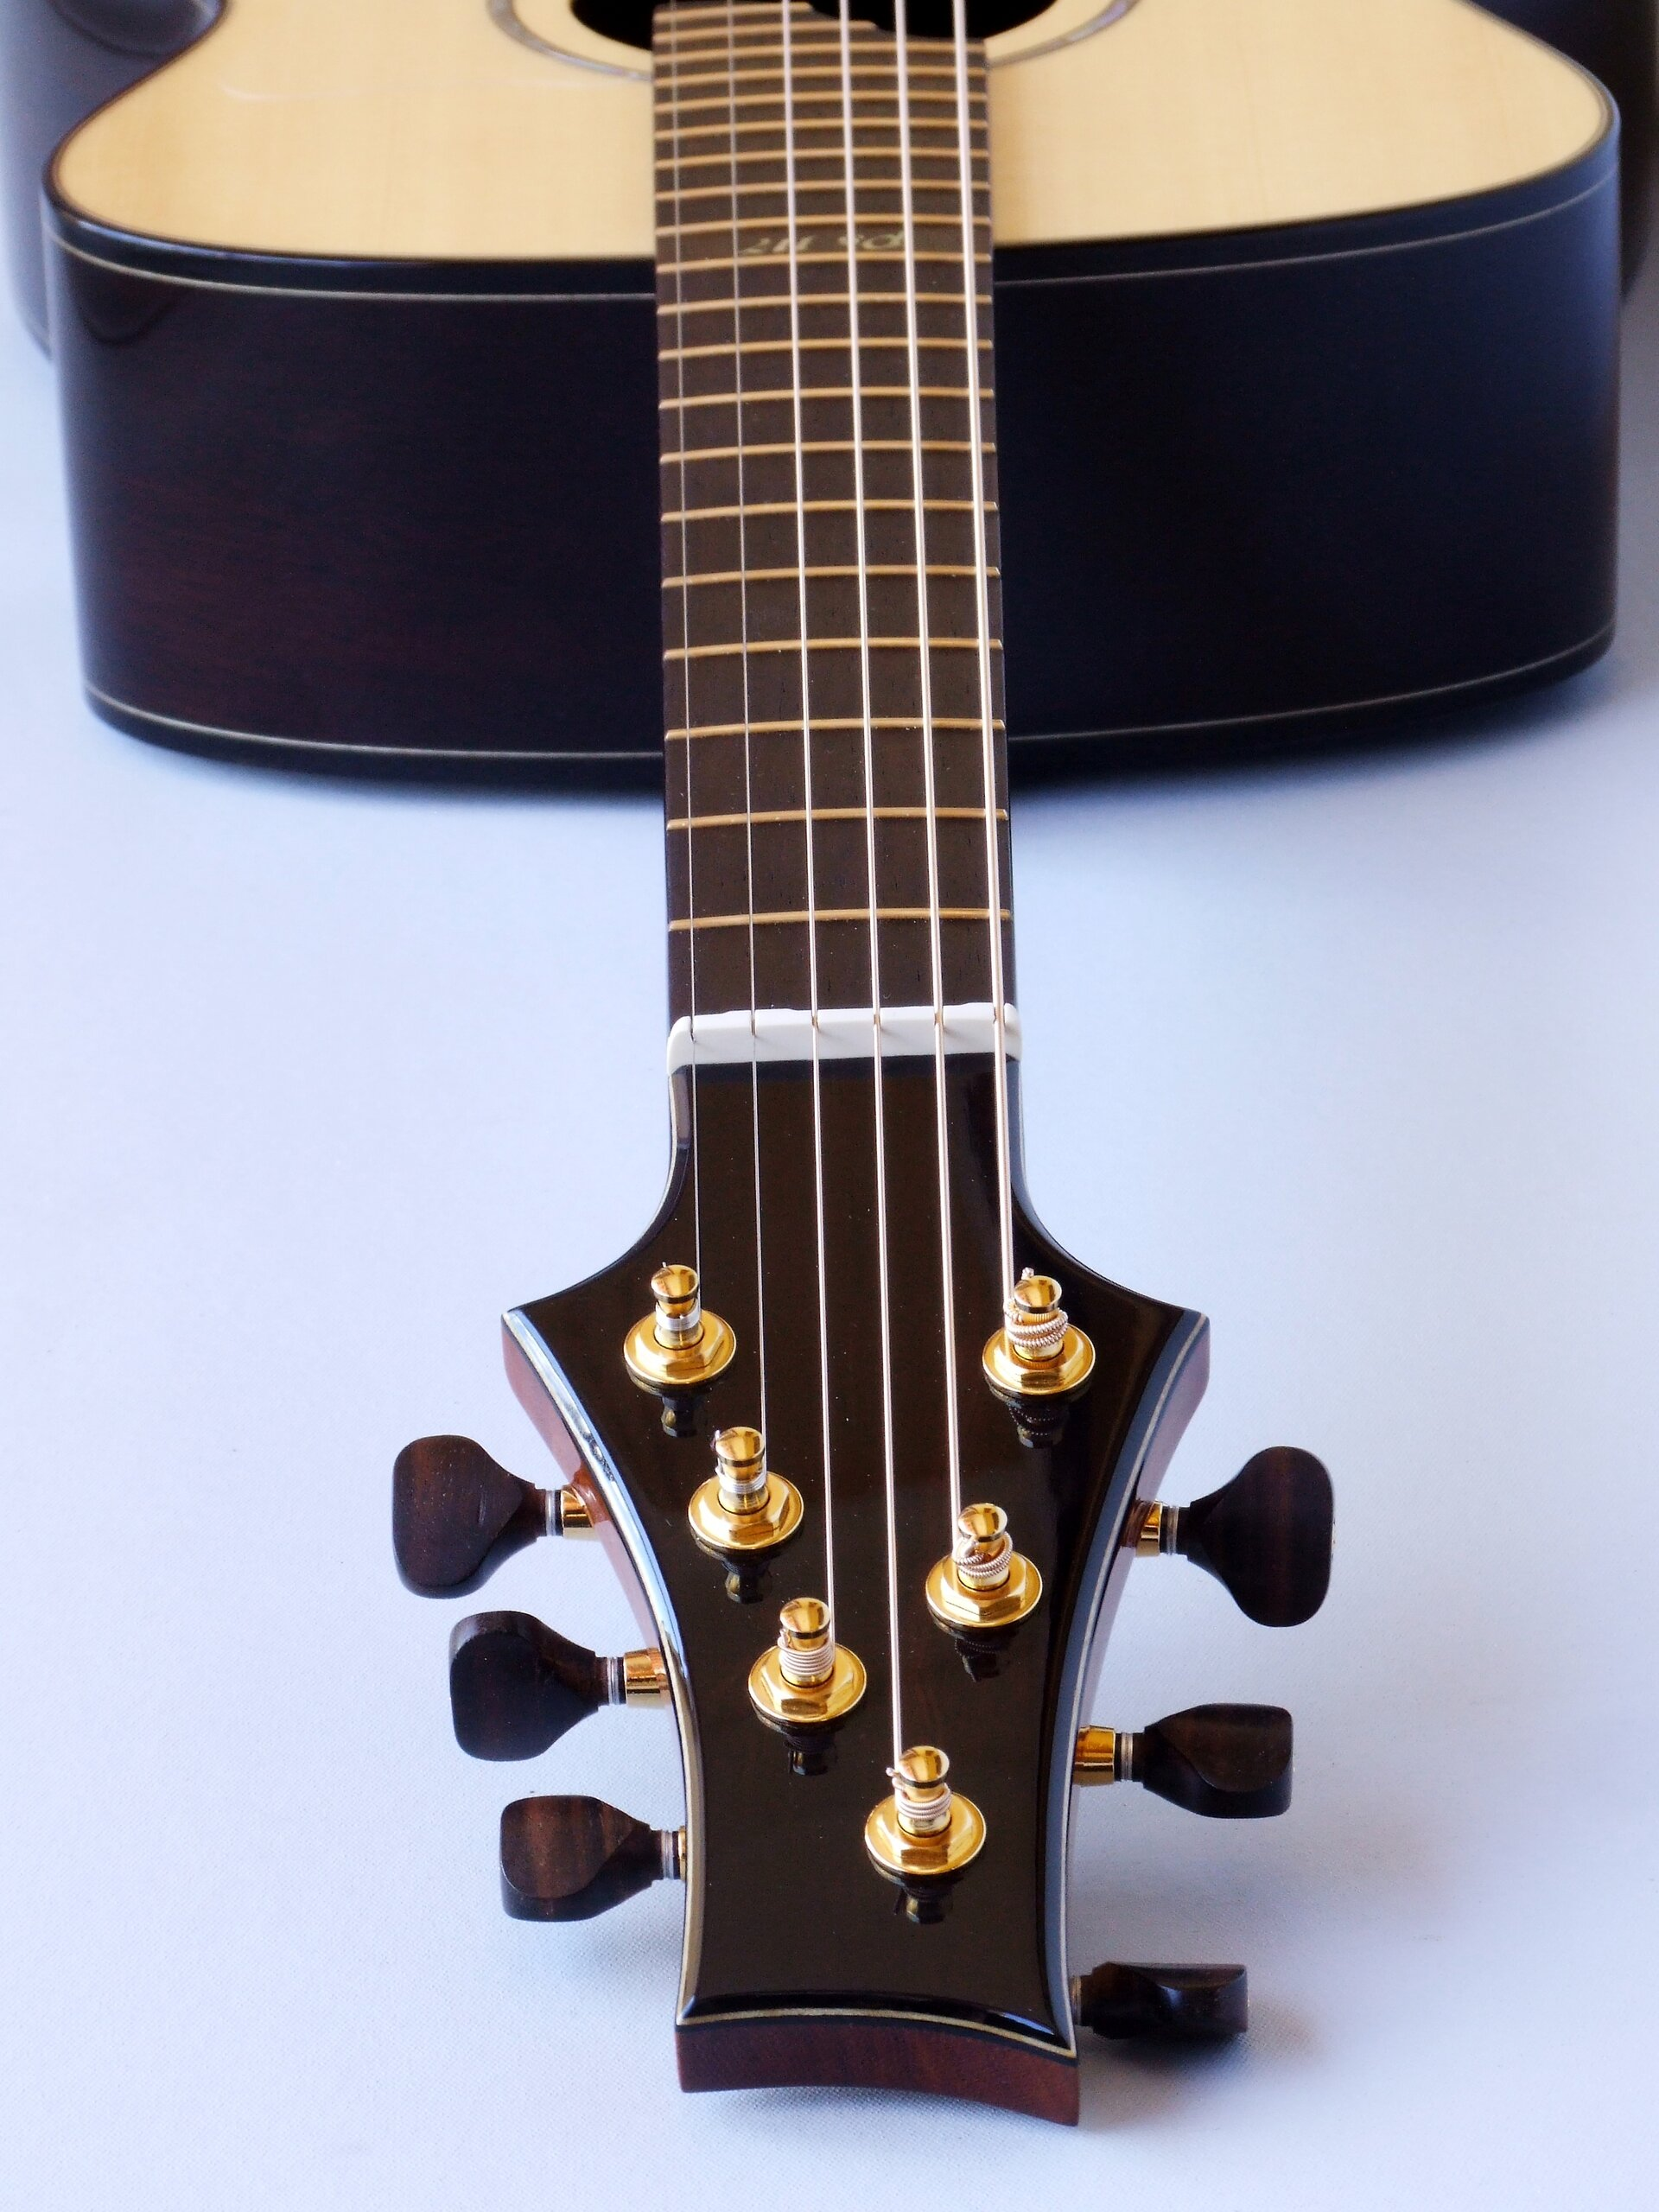 View down the neck of a straight string pull guitar